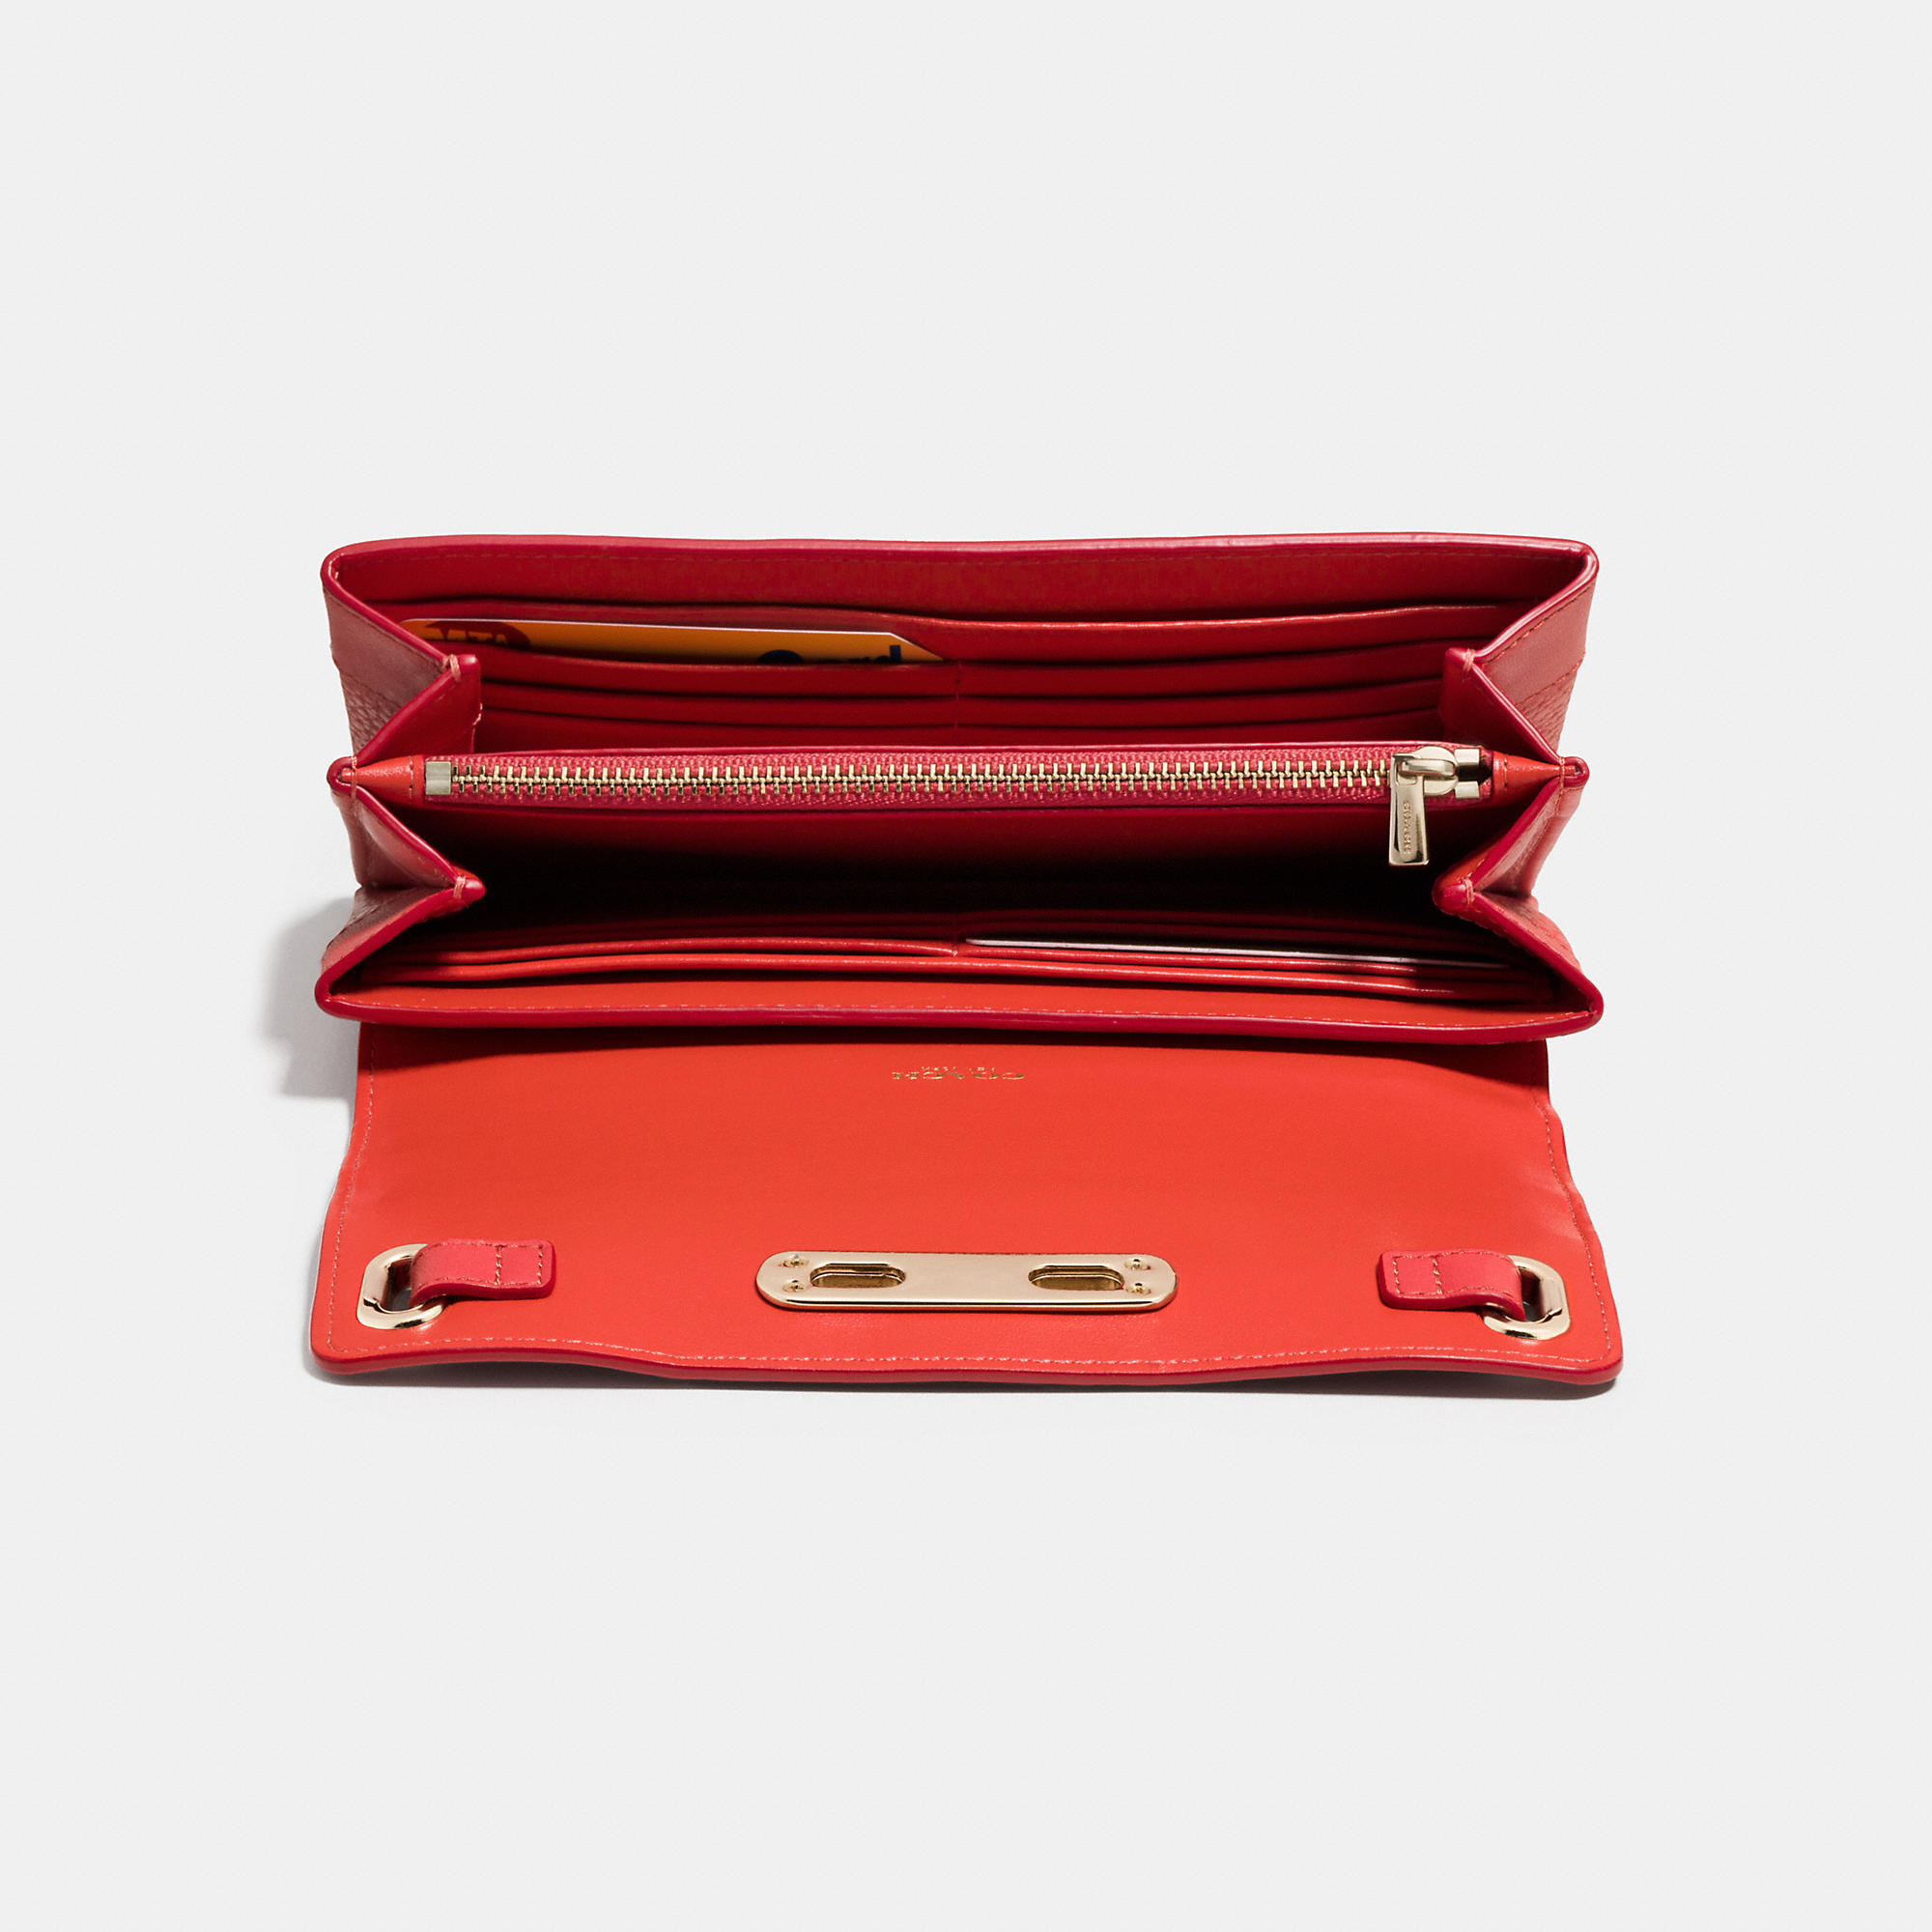 ee2f09b3ce76 Lyst - COACH Swagger Wallet In Pebble Leather in Red